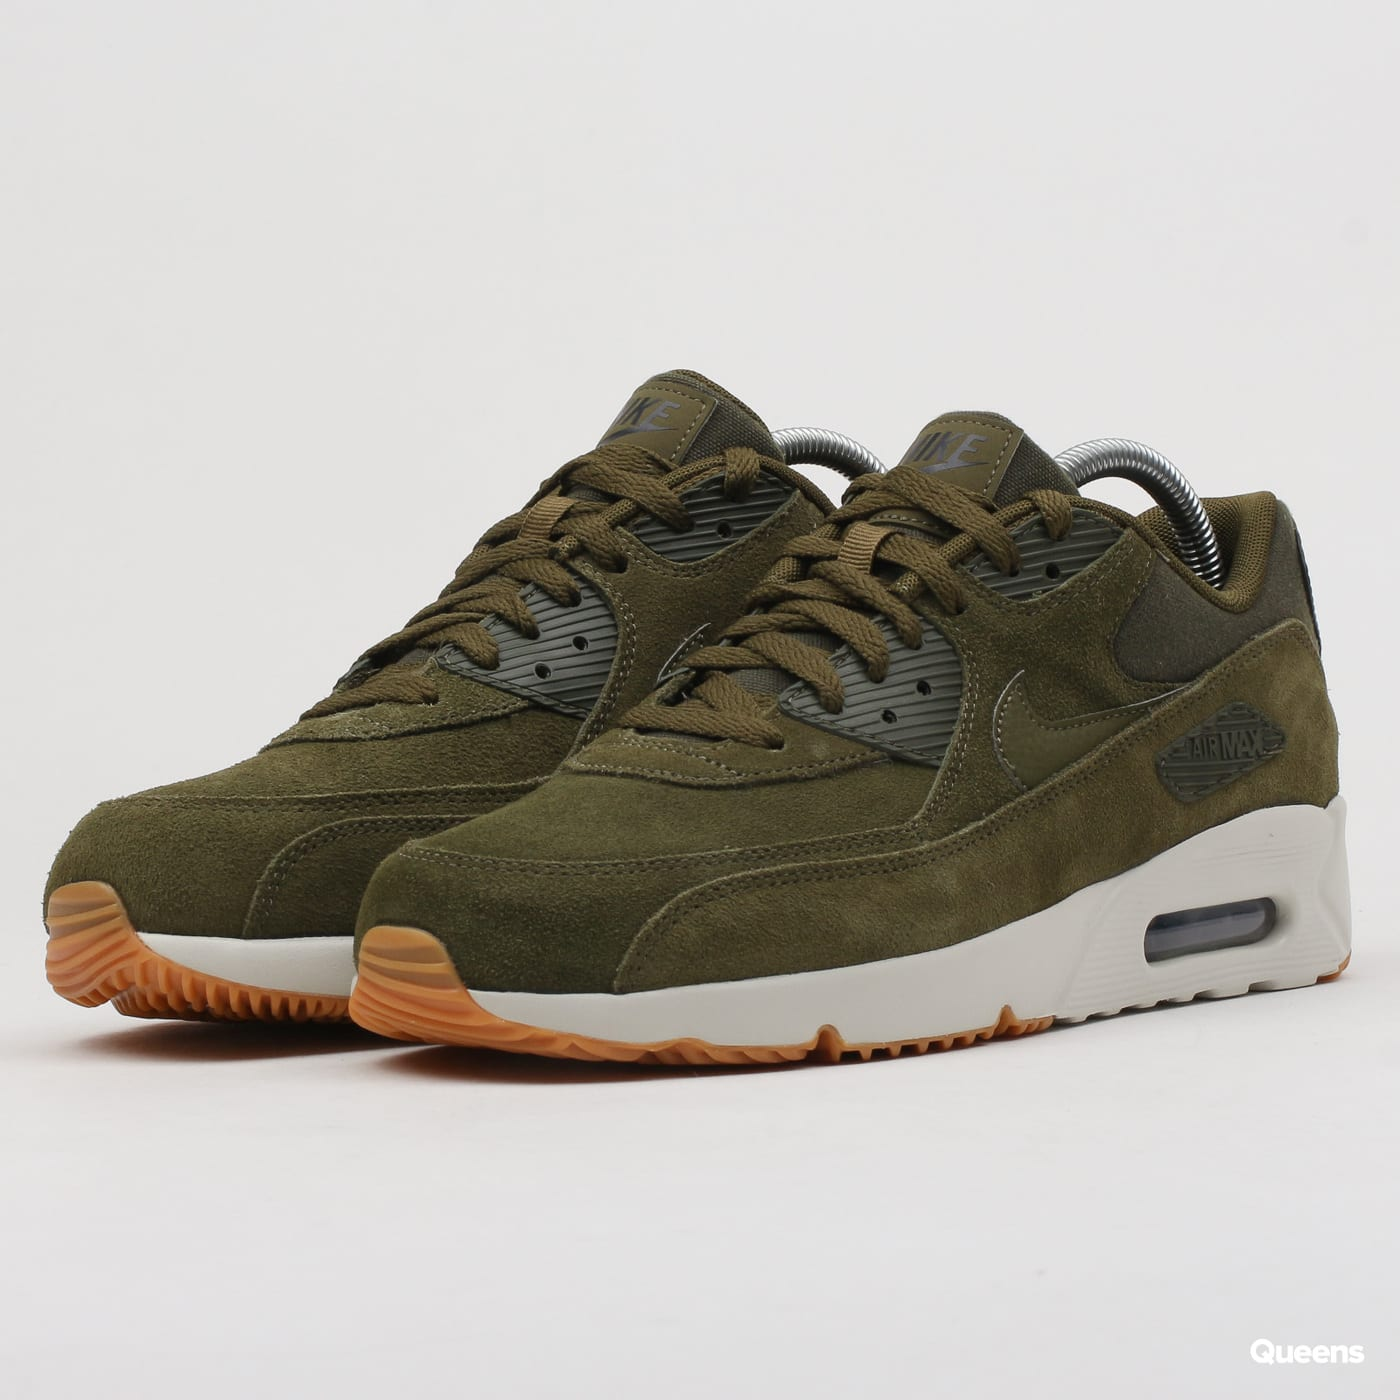 Obuv Nike Air Max 90 Ultra 2.0 Leather (924447-301)– Queens 💚 ee776b5945c